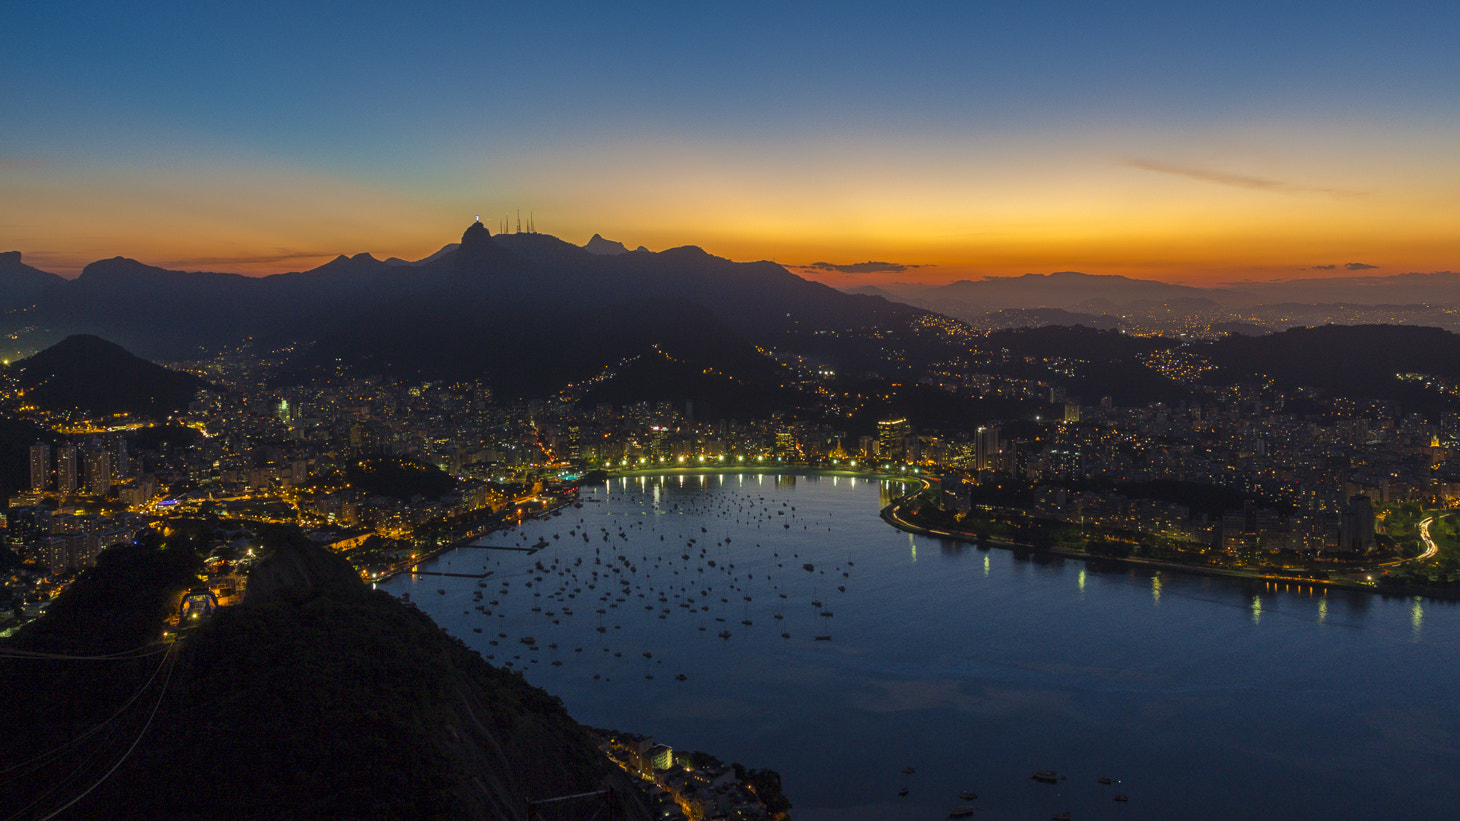 Photograph Sunset in Rio by Fabio Ito on 500px